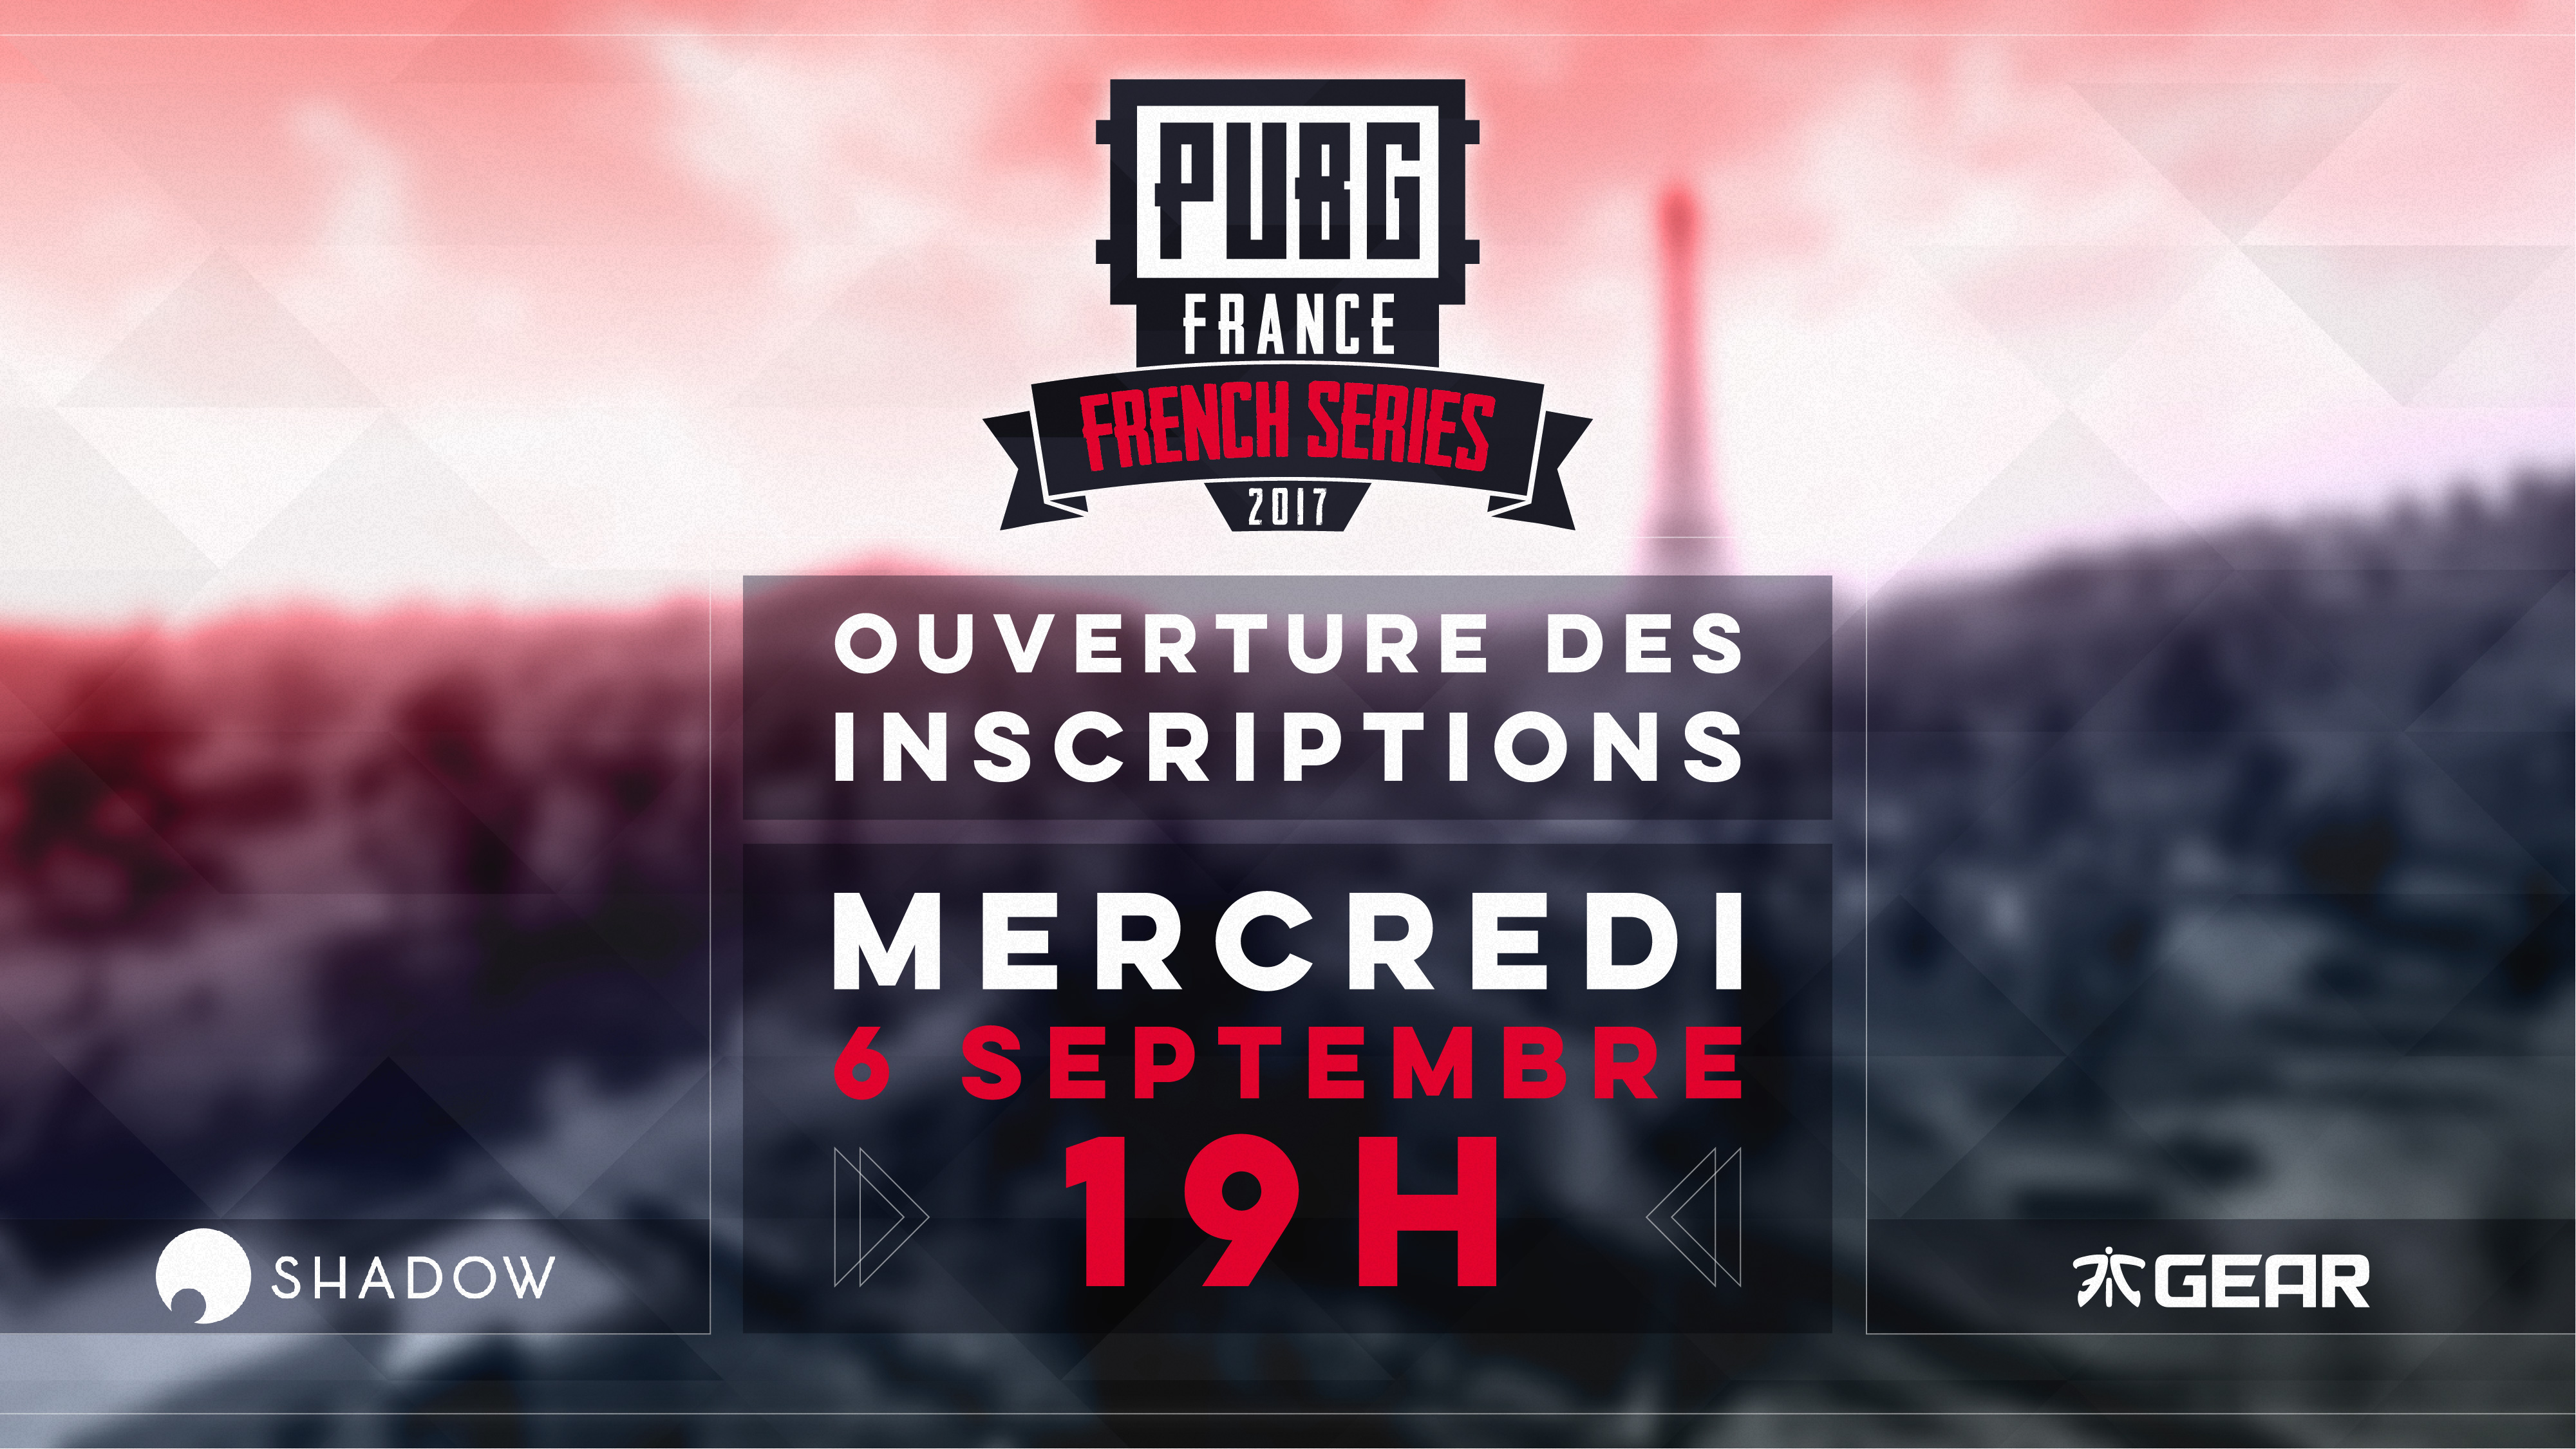 PUBG France - French Series 2017 - Dates inscription